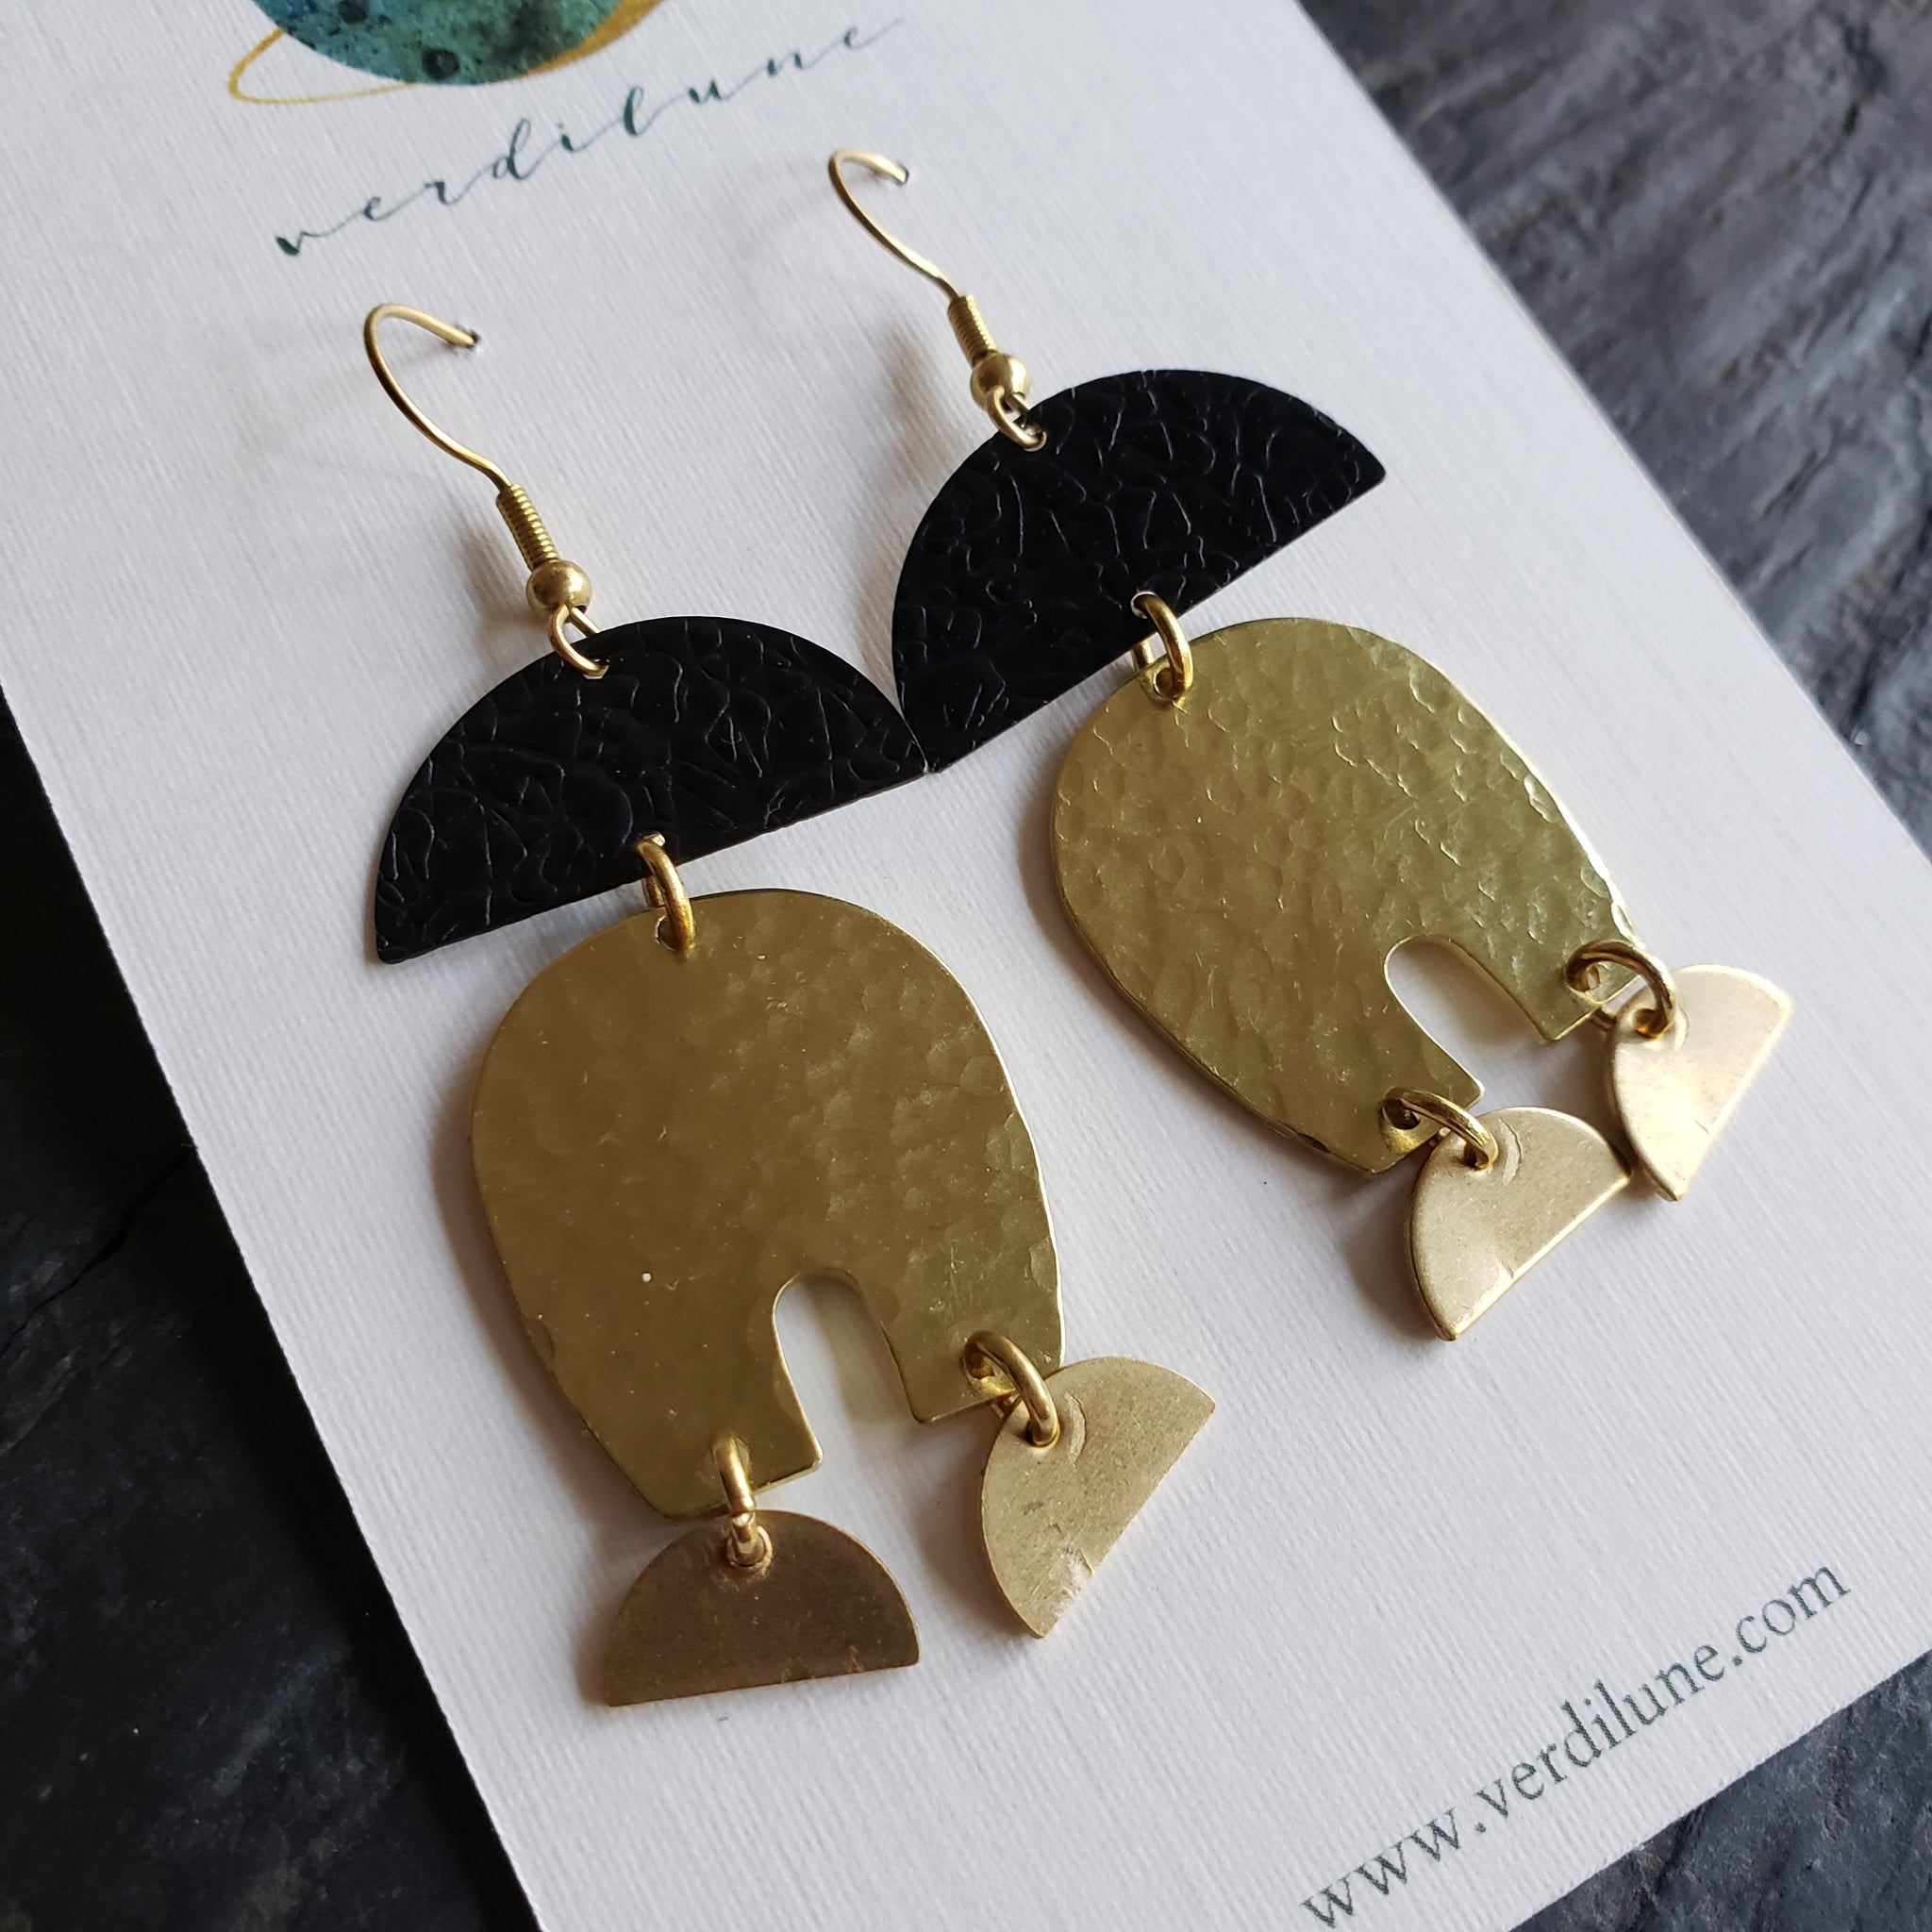 Elemental Metals Collection ◇ Dark Matter◇ Celestially-Inspired Brass Earrings